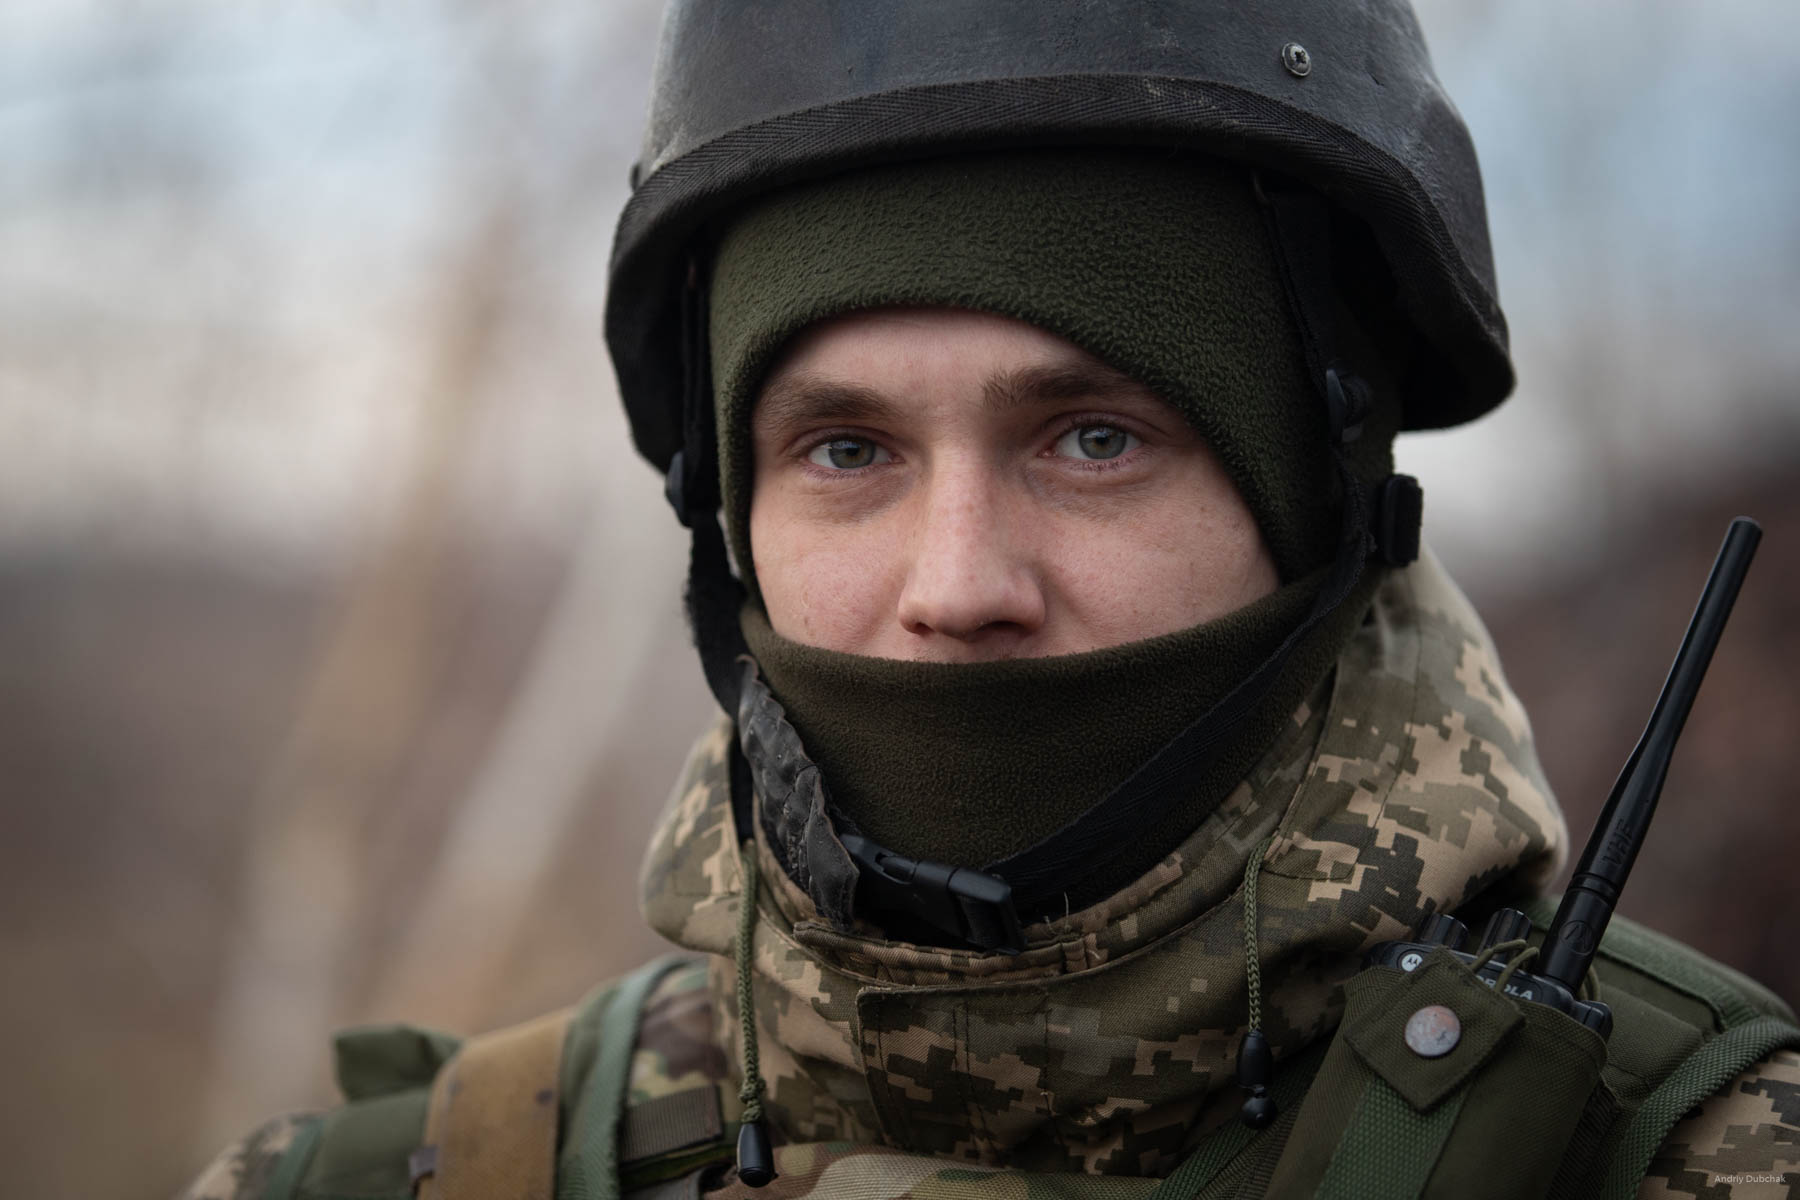 Alexander is 28 years old. Originally, from Chernigov region, he speaks calmly, confidently, logically. He is in the war since 2014, started fighting with the first wave of mobilization. Three months later, he was discharged for some reason. In 2015, he was called up for military service again with the sixth wave of mobilization. He served 15 months mobilization duty, and then remained for a half-year contract.  After that he returned home for six months, could not stand it and signed the contract. In a matter of a split second after this photo shot, we were shot at by an enemy sniper.  (Video of this moment: https://goo.gl/pBeMHU) It was a narrow escape, but a week later, a sniper tapped the boy in the head. 7.62 bullet came under the helmet - the brain was injured. Now, he is slowly recovers and undergoes a long rehab in Lviv. District of Popasnoy, December 2017